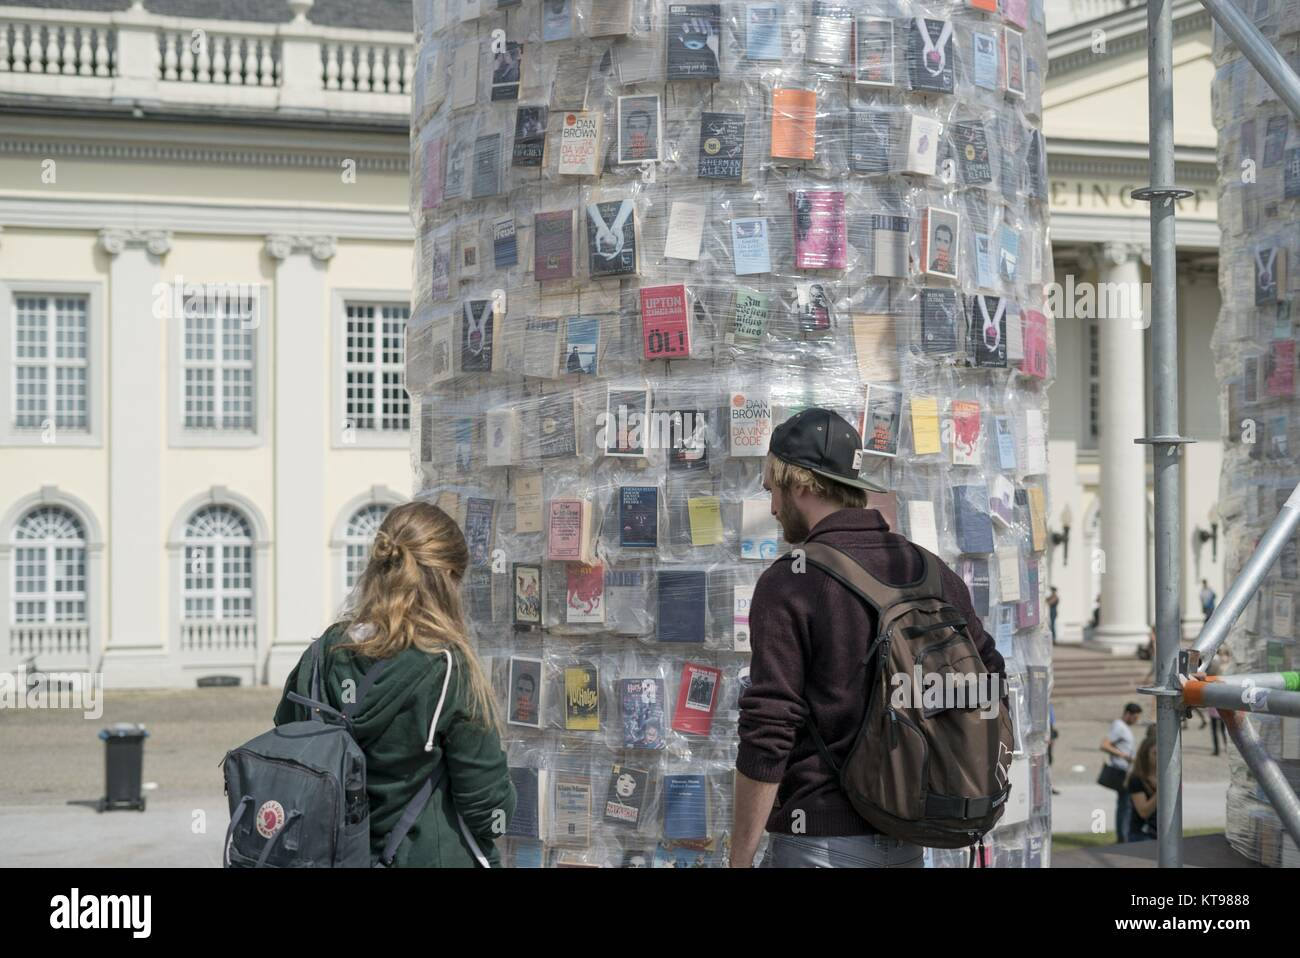 Visitors looking at documenta 14 Art Installation Pantheon of Booky by Marta Minujin on Friedrich Square in Kassel - Stock Image